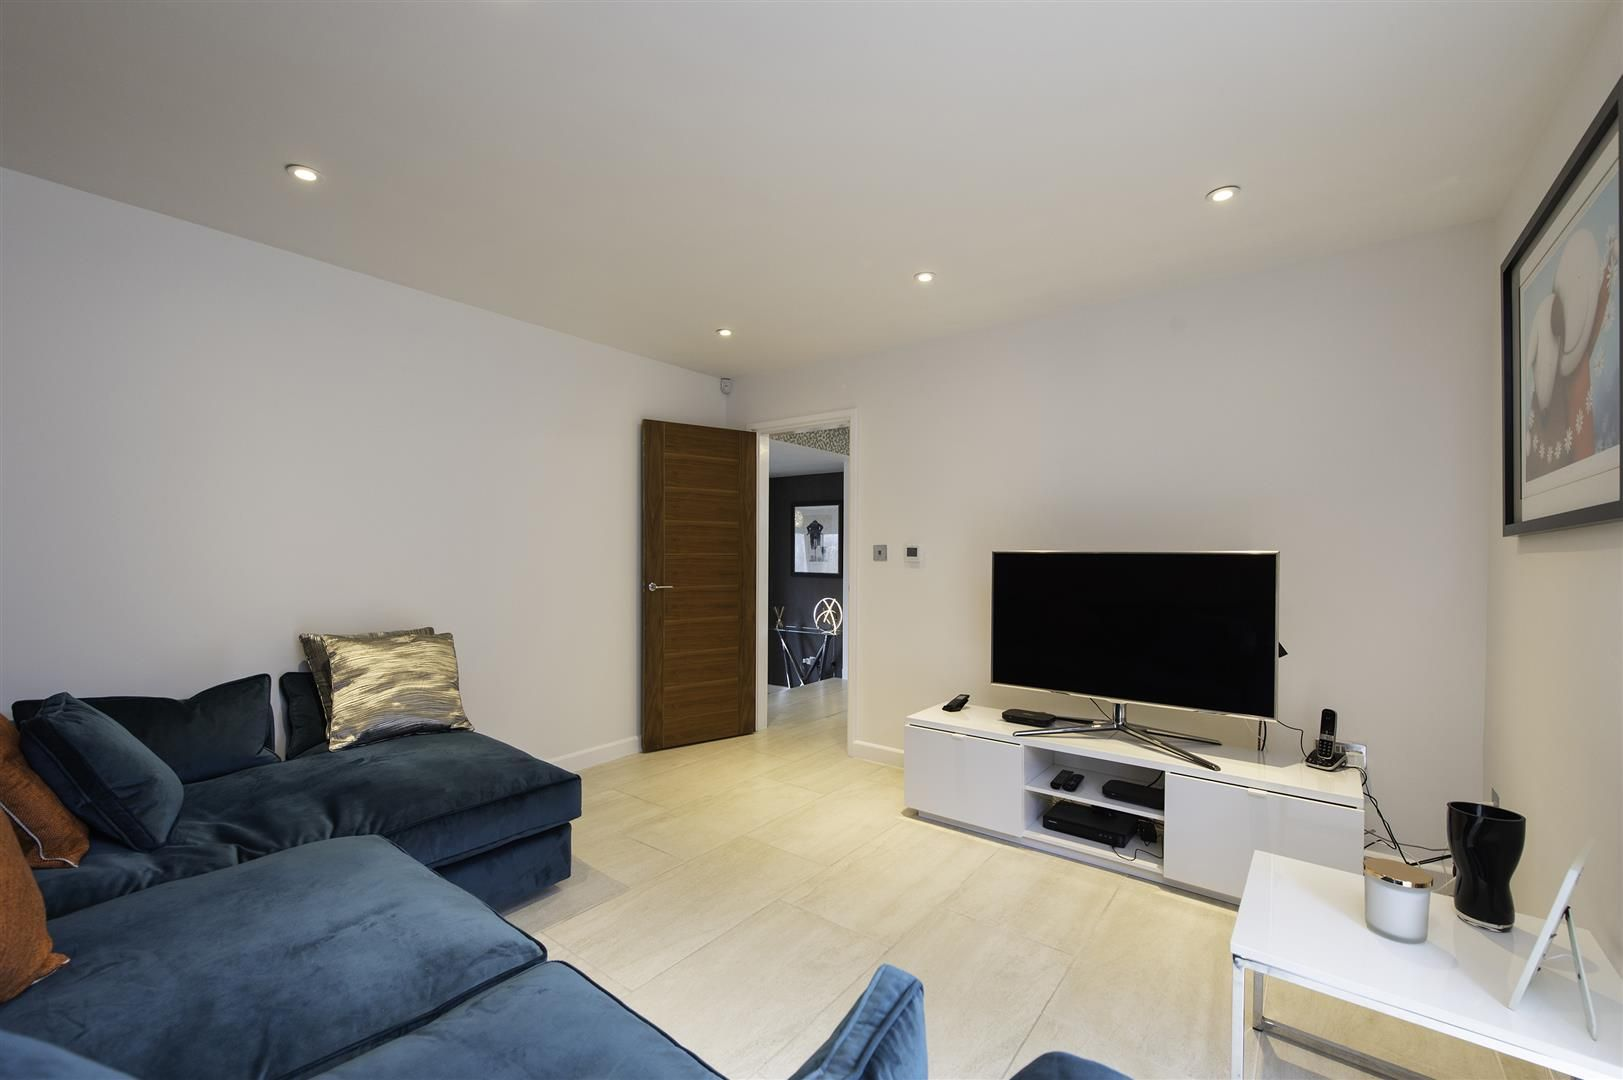 4 bed detached for sale in Stourton  - Property Image 8